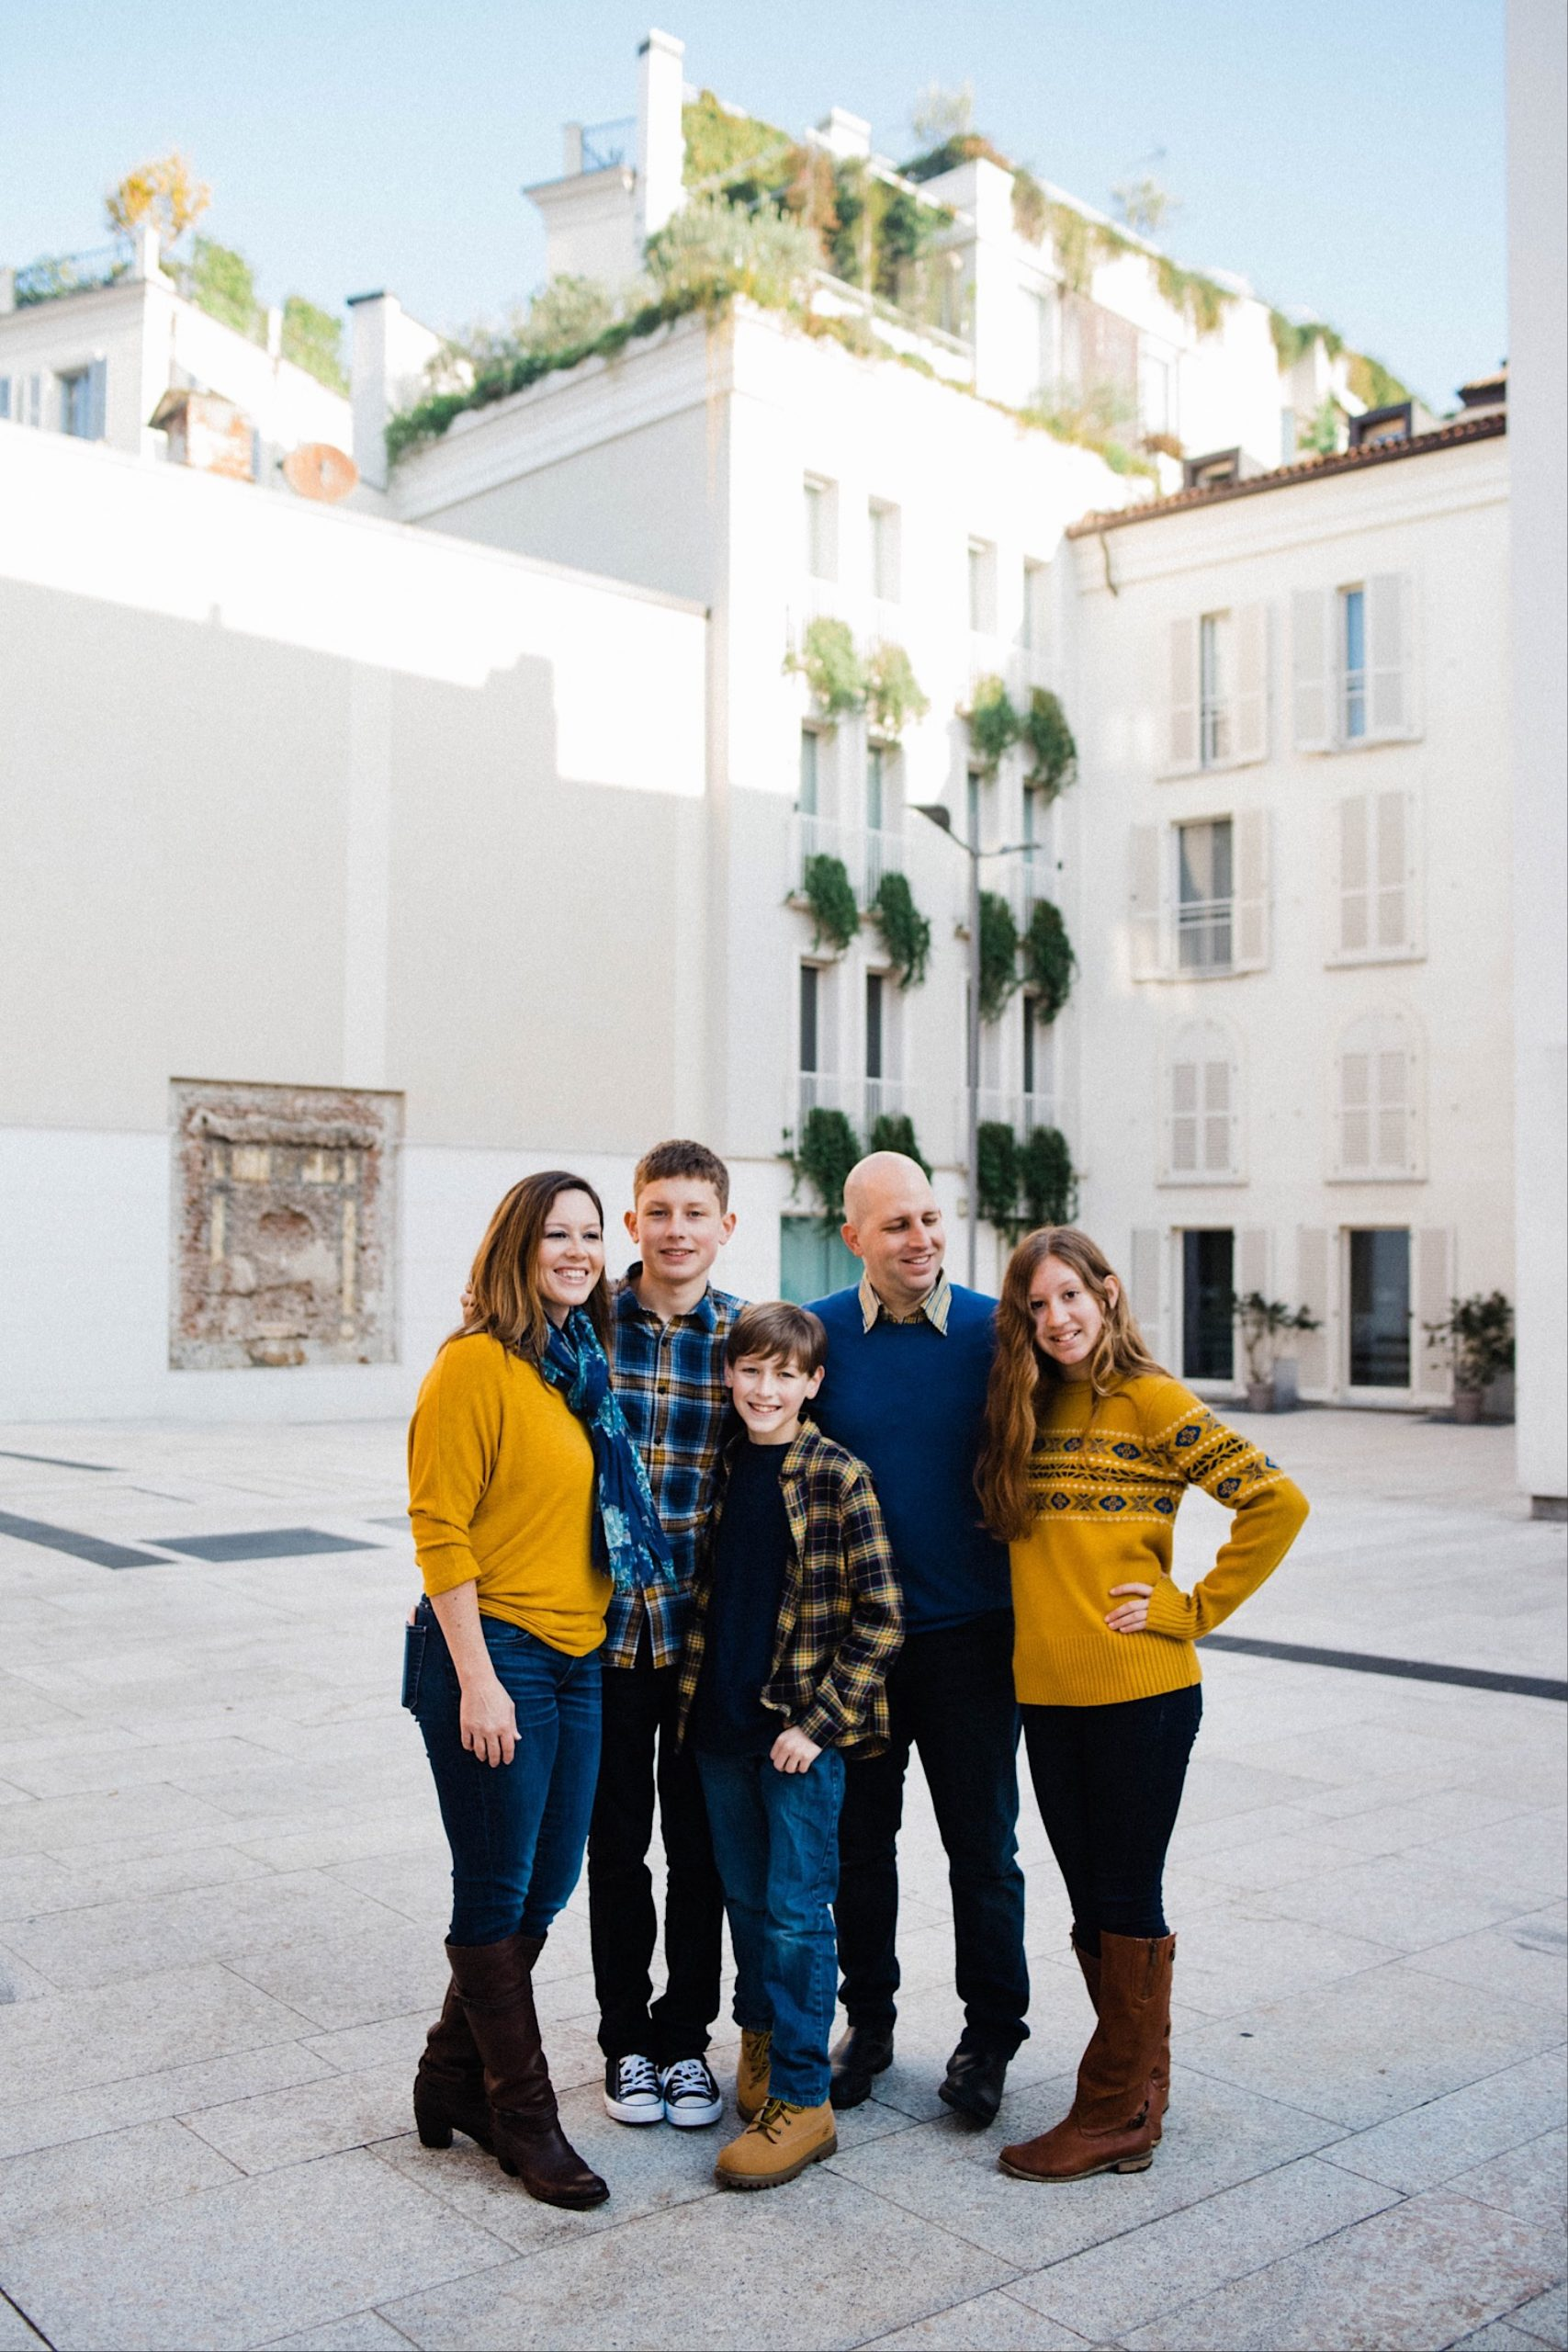 Family Photography in Milan, taken at Piazza Borromeo, of a family with three teenagers standing together and smiling.